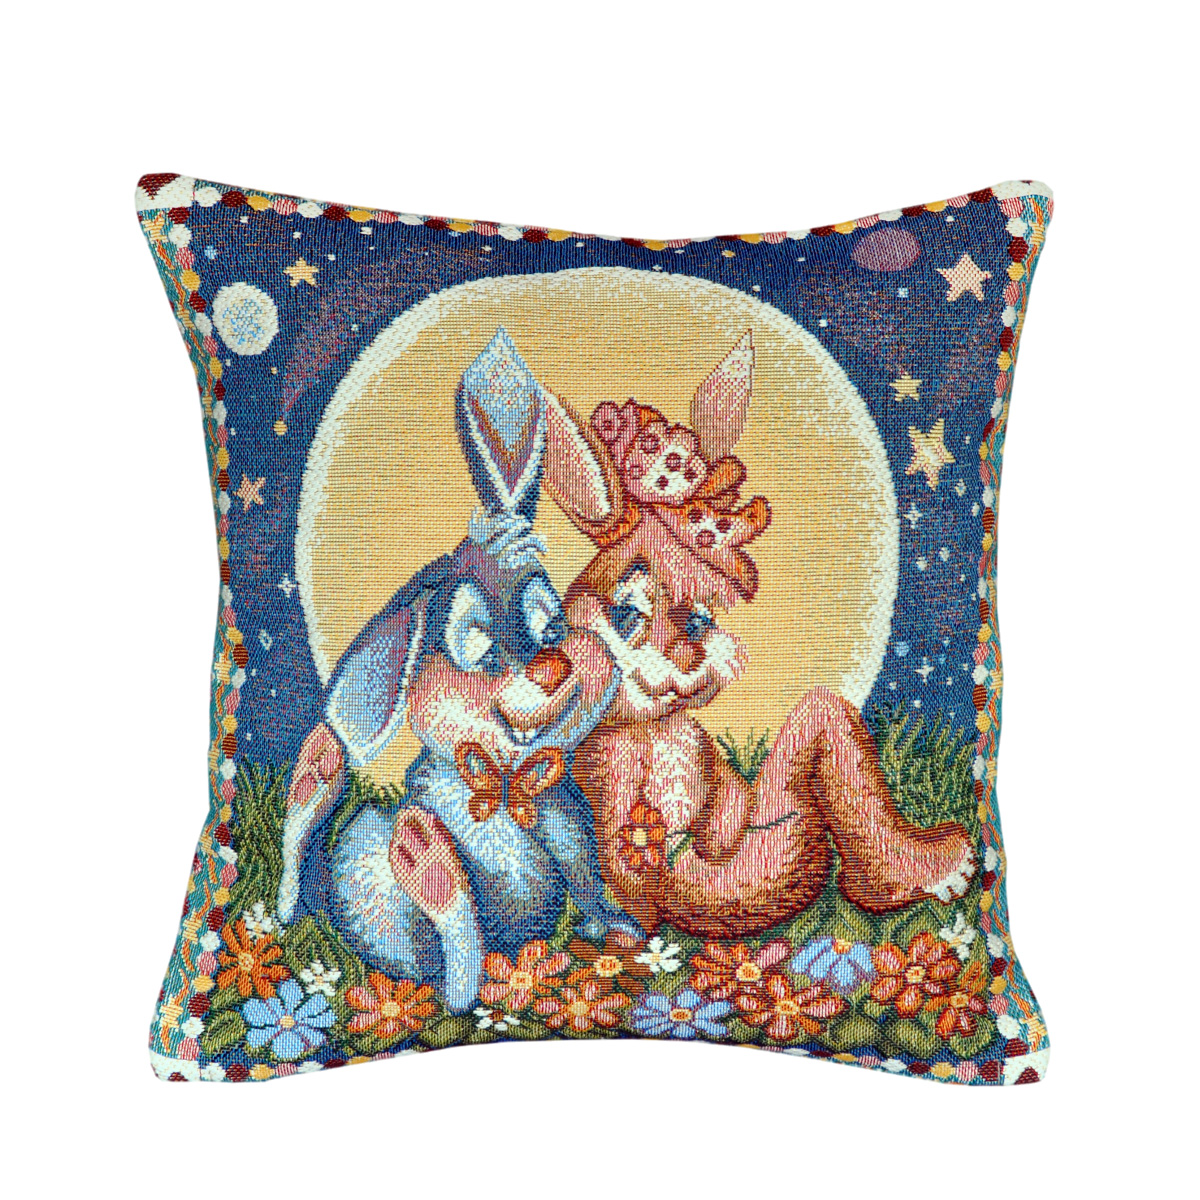 Bunny Couple Tapestry Cushion - 30x30cm